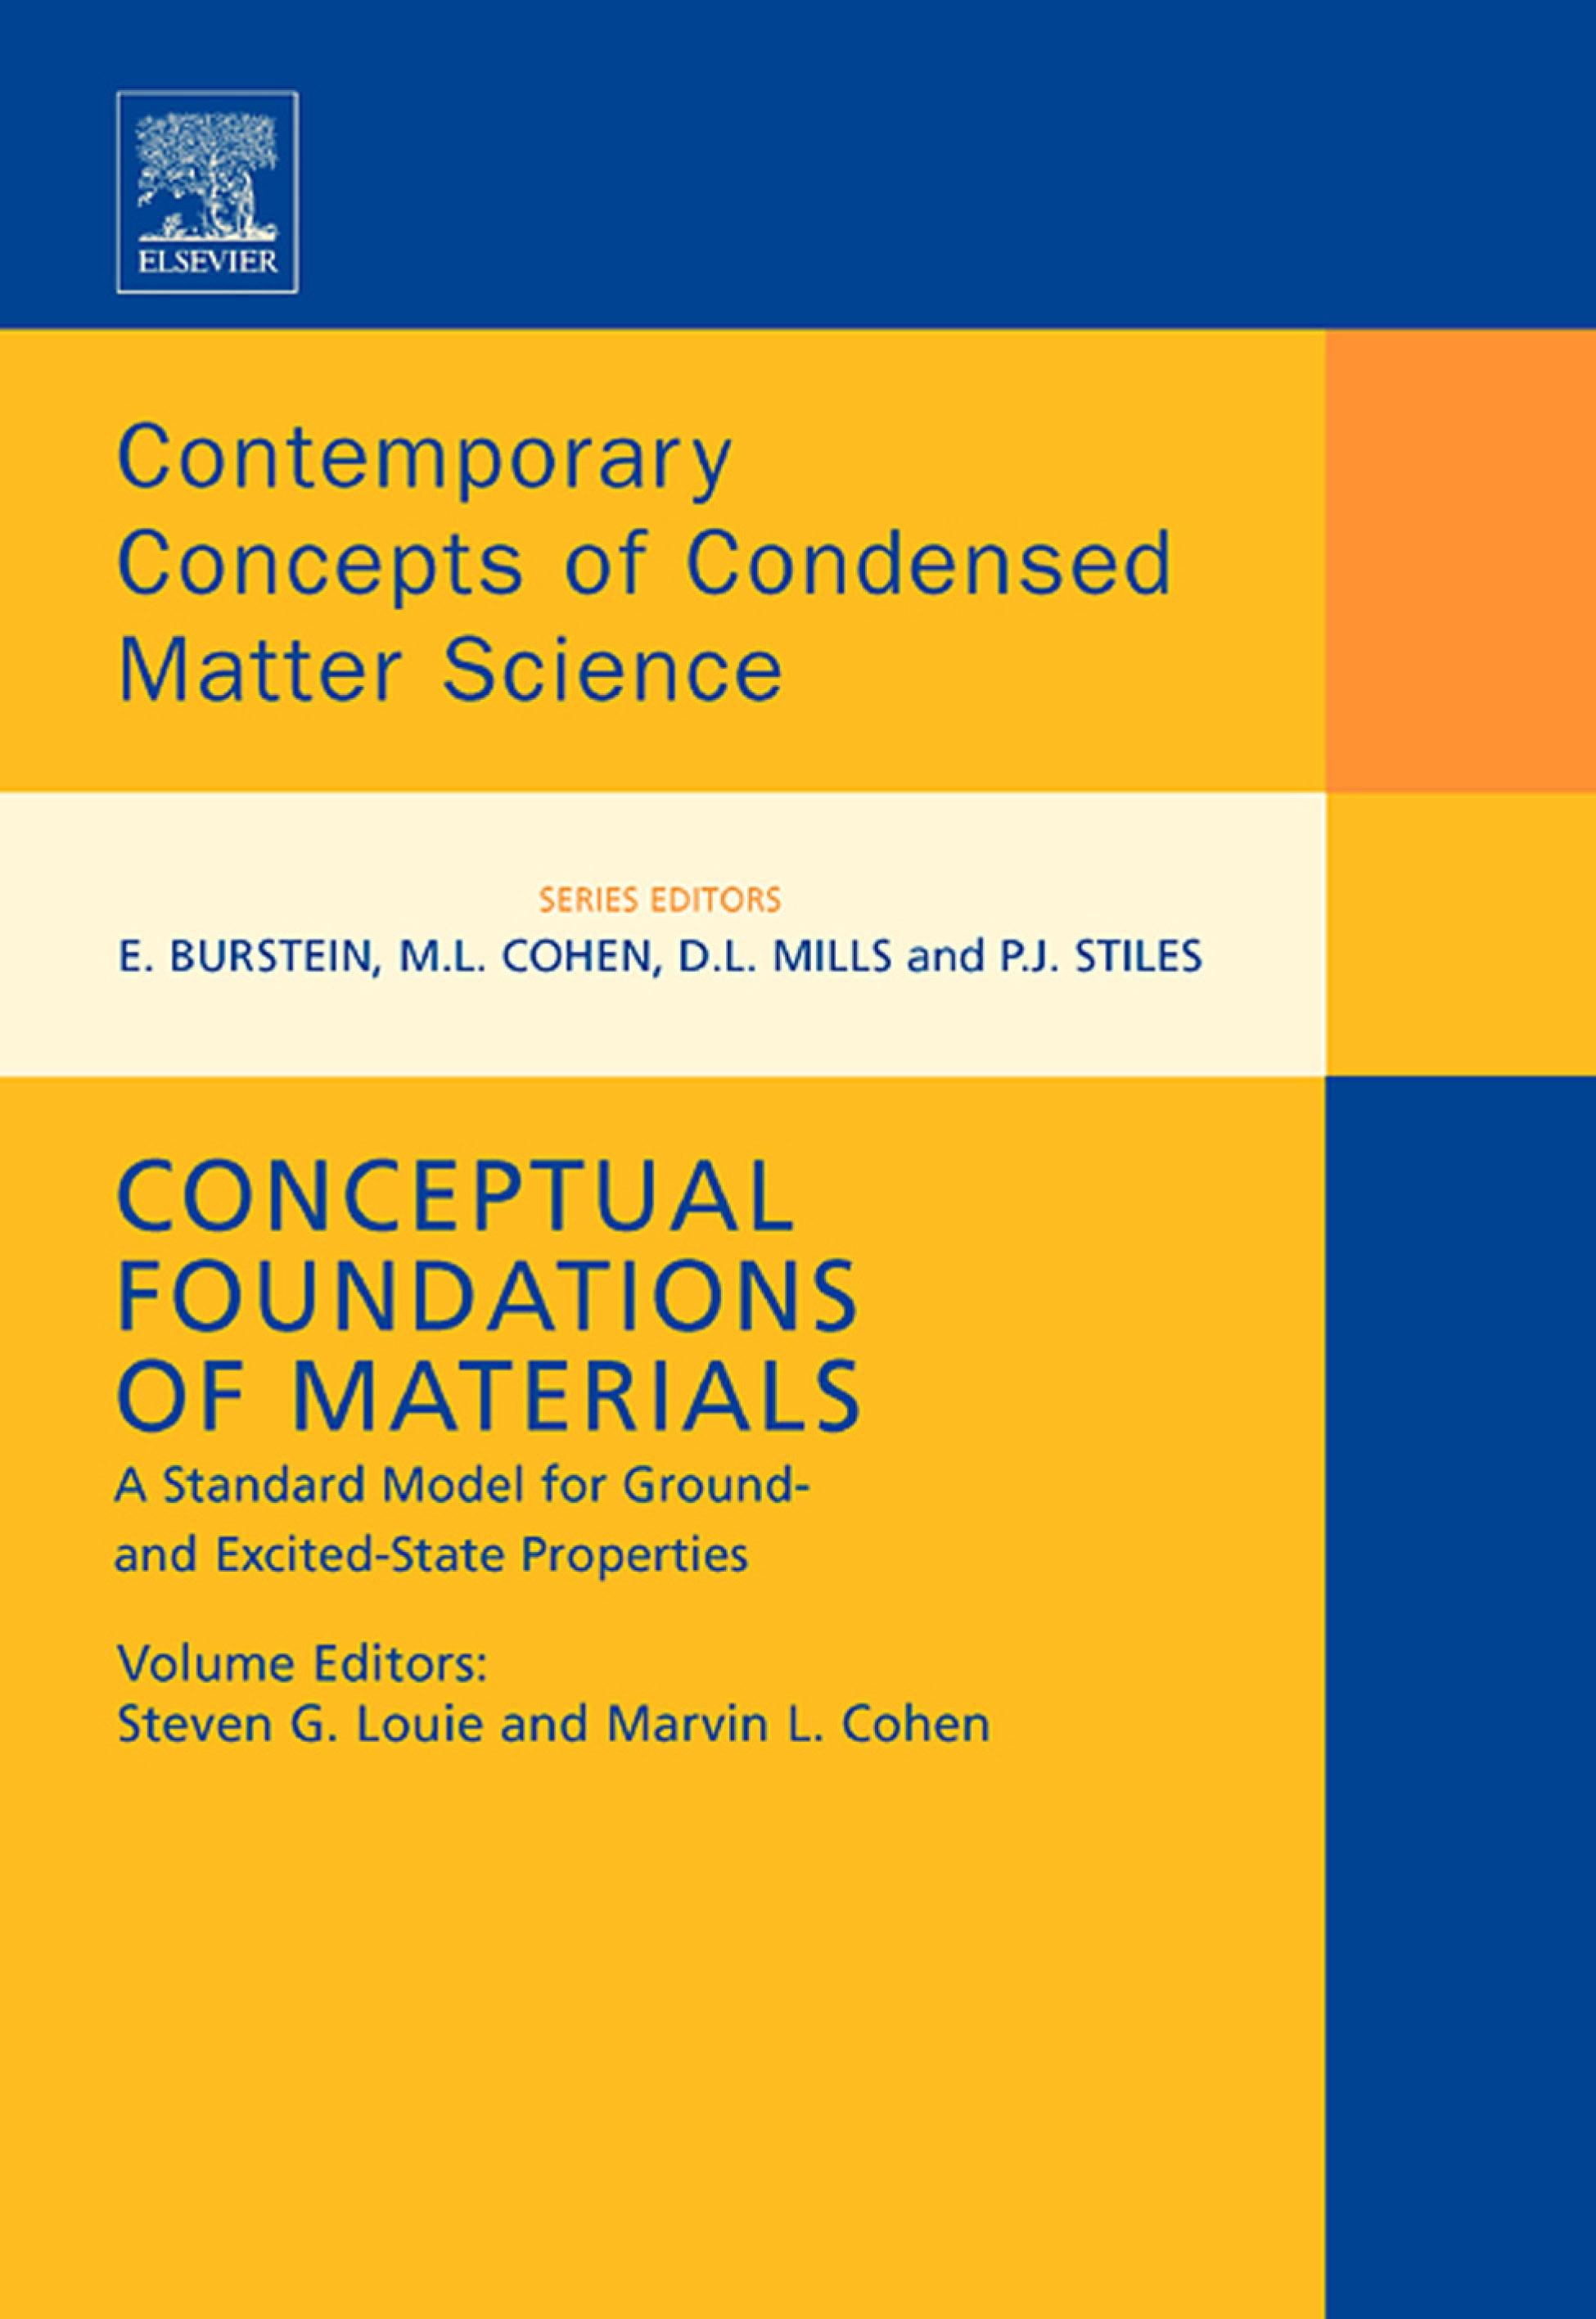 Conceptual Foundations of Materials: A standard model for ground- and excited-state properties EB9780080464572